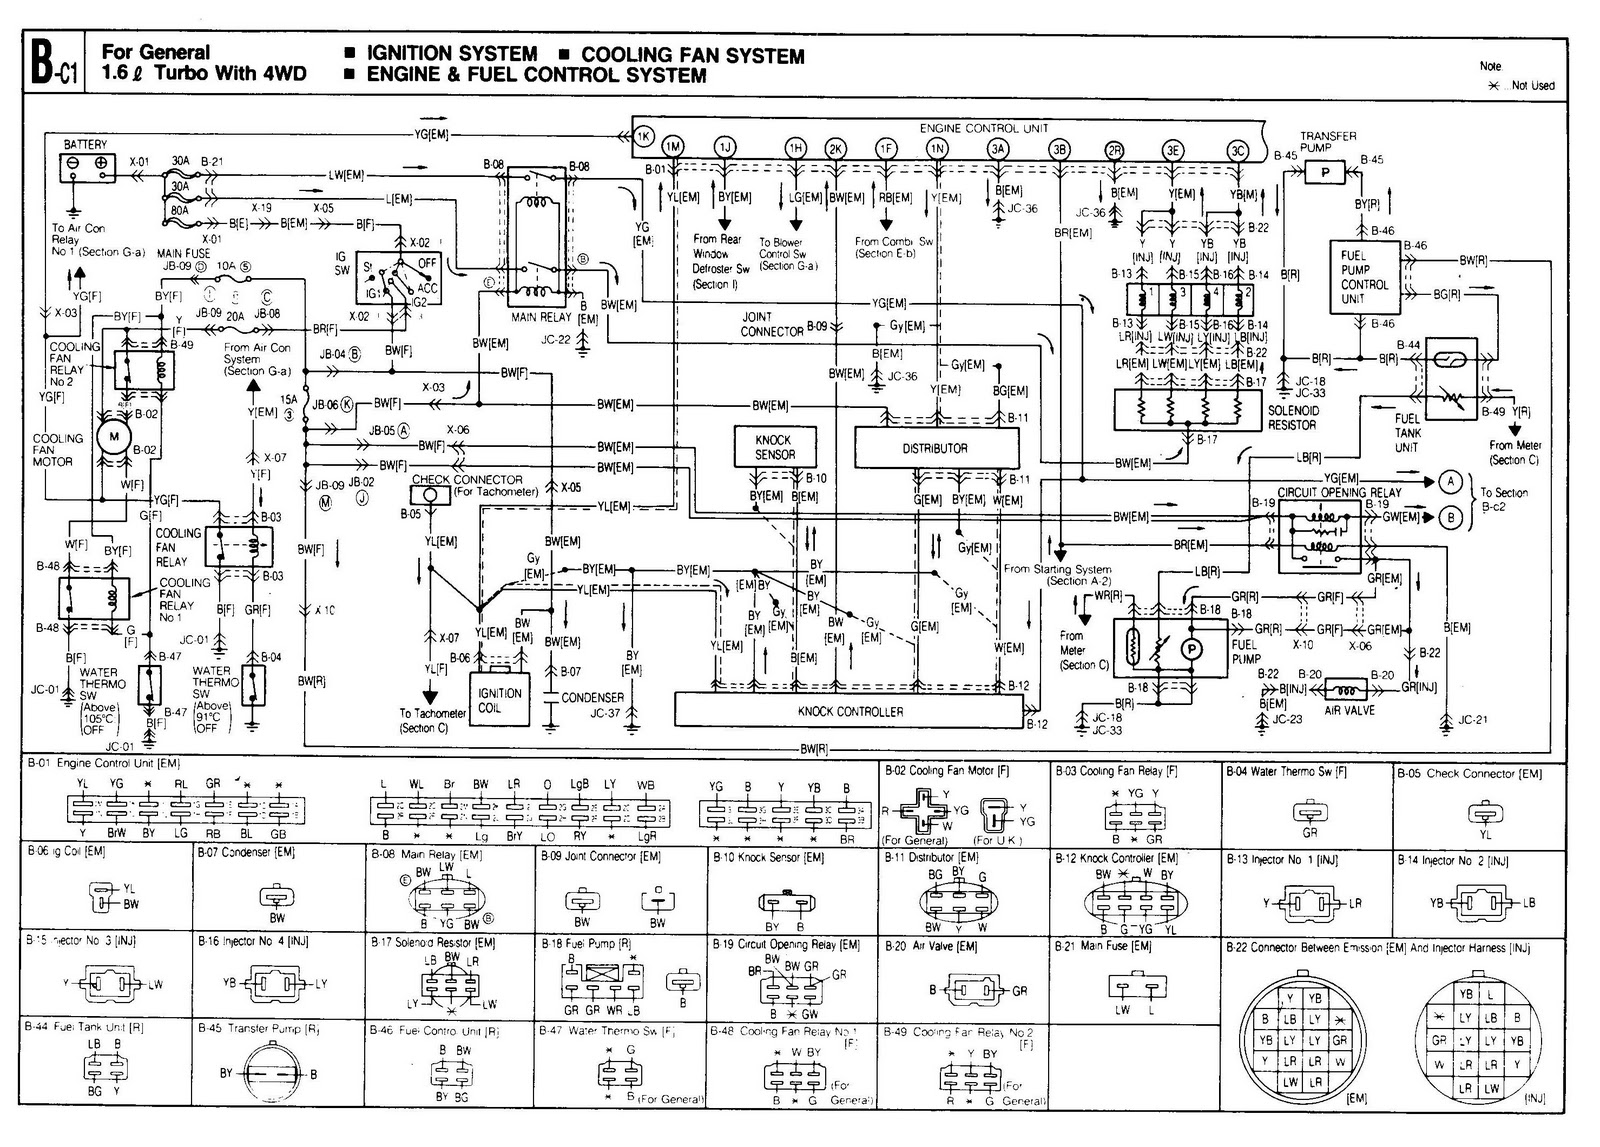 1514147 Alternator Wiring 05 Gto Harness Vette Alternator likewise Mazda B2200 Vacuum Diagram furthermore 4270 also Toyota Echo Fuse Box Diagram besides 2001 Daewoo Leganza Engine. on mazda mx6 wiring harness